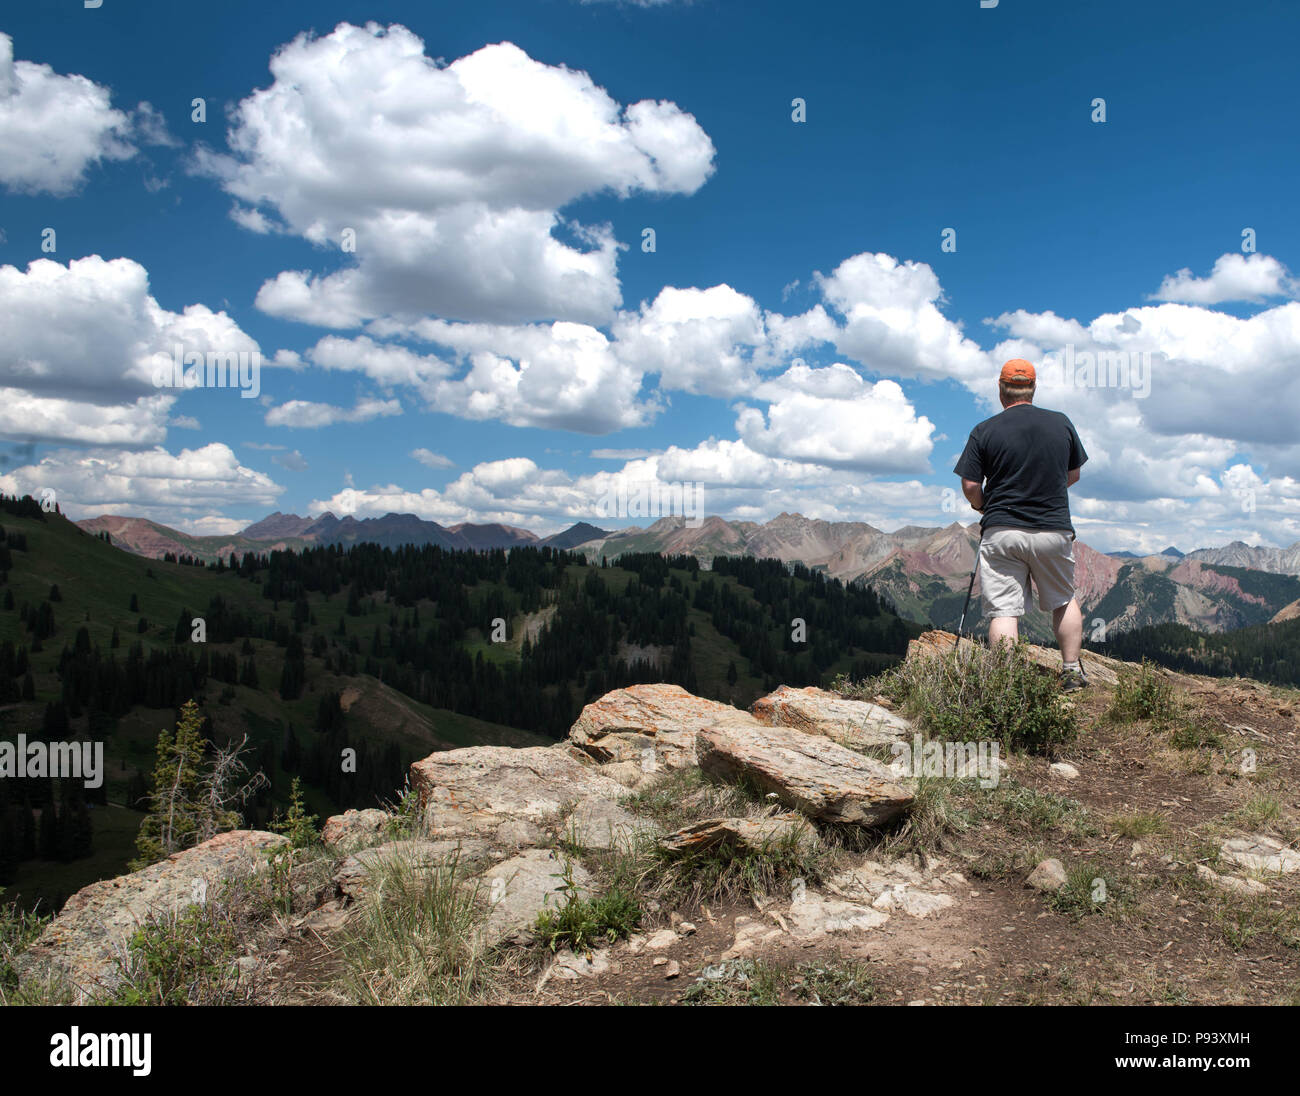 Alpine Hiker Taking in Natures Beauty High in the Rocky Mountains - Stock Image